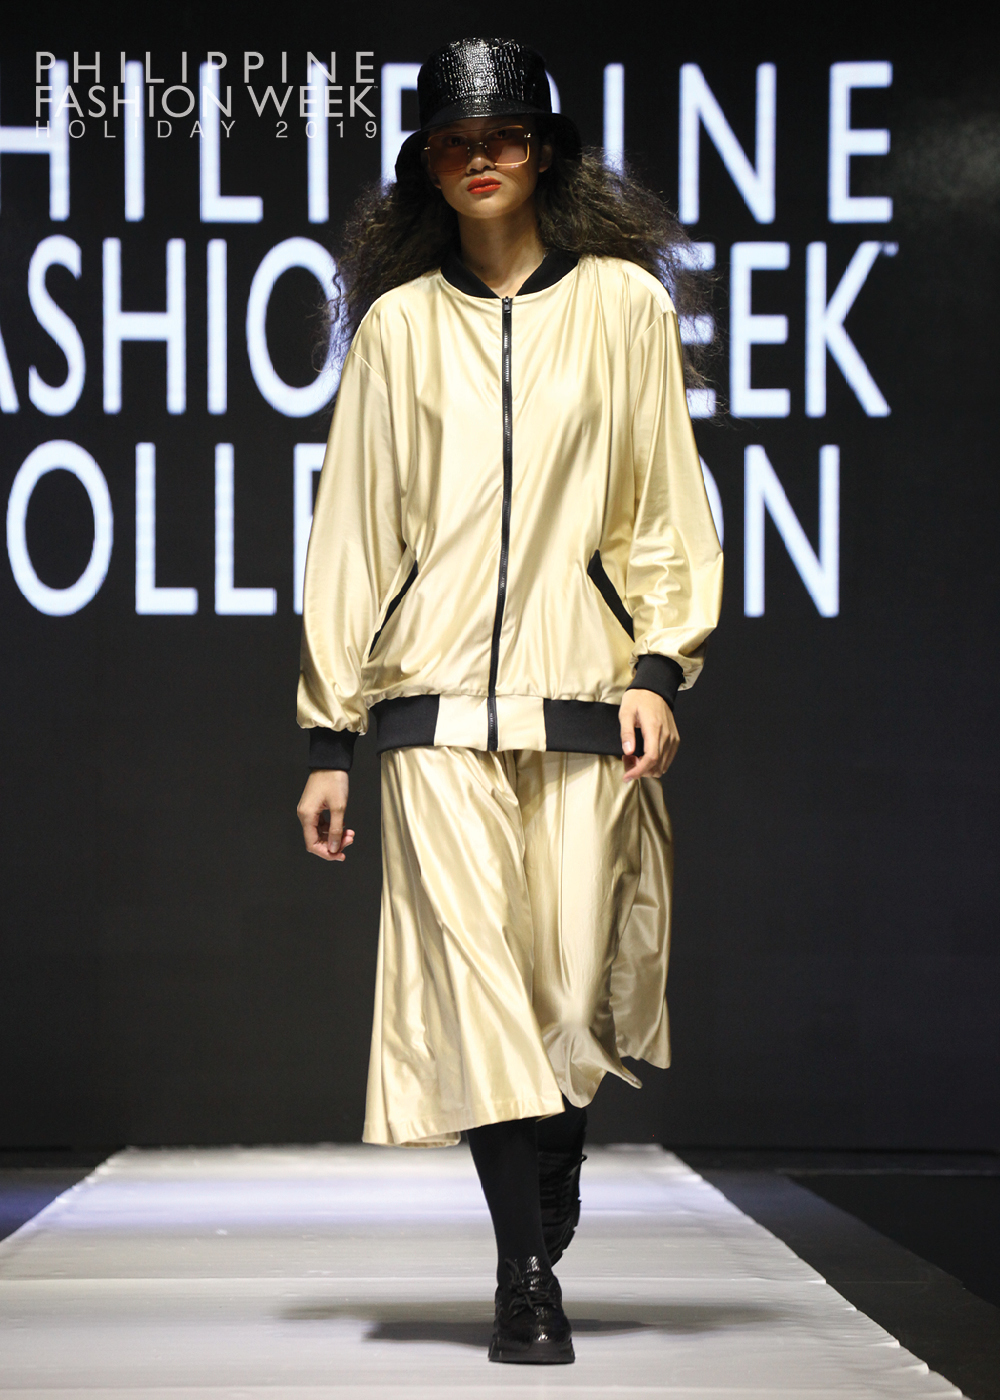 PhFW_collection show5.jpg